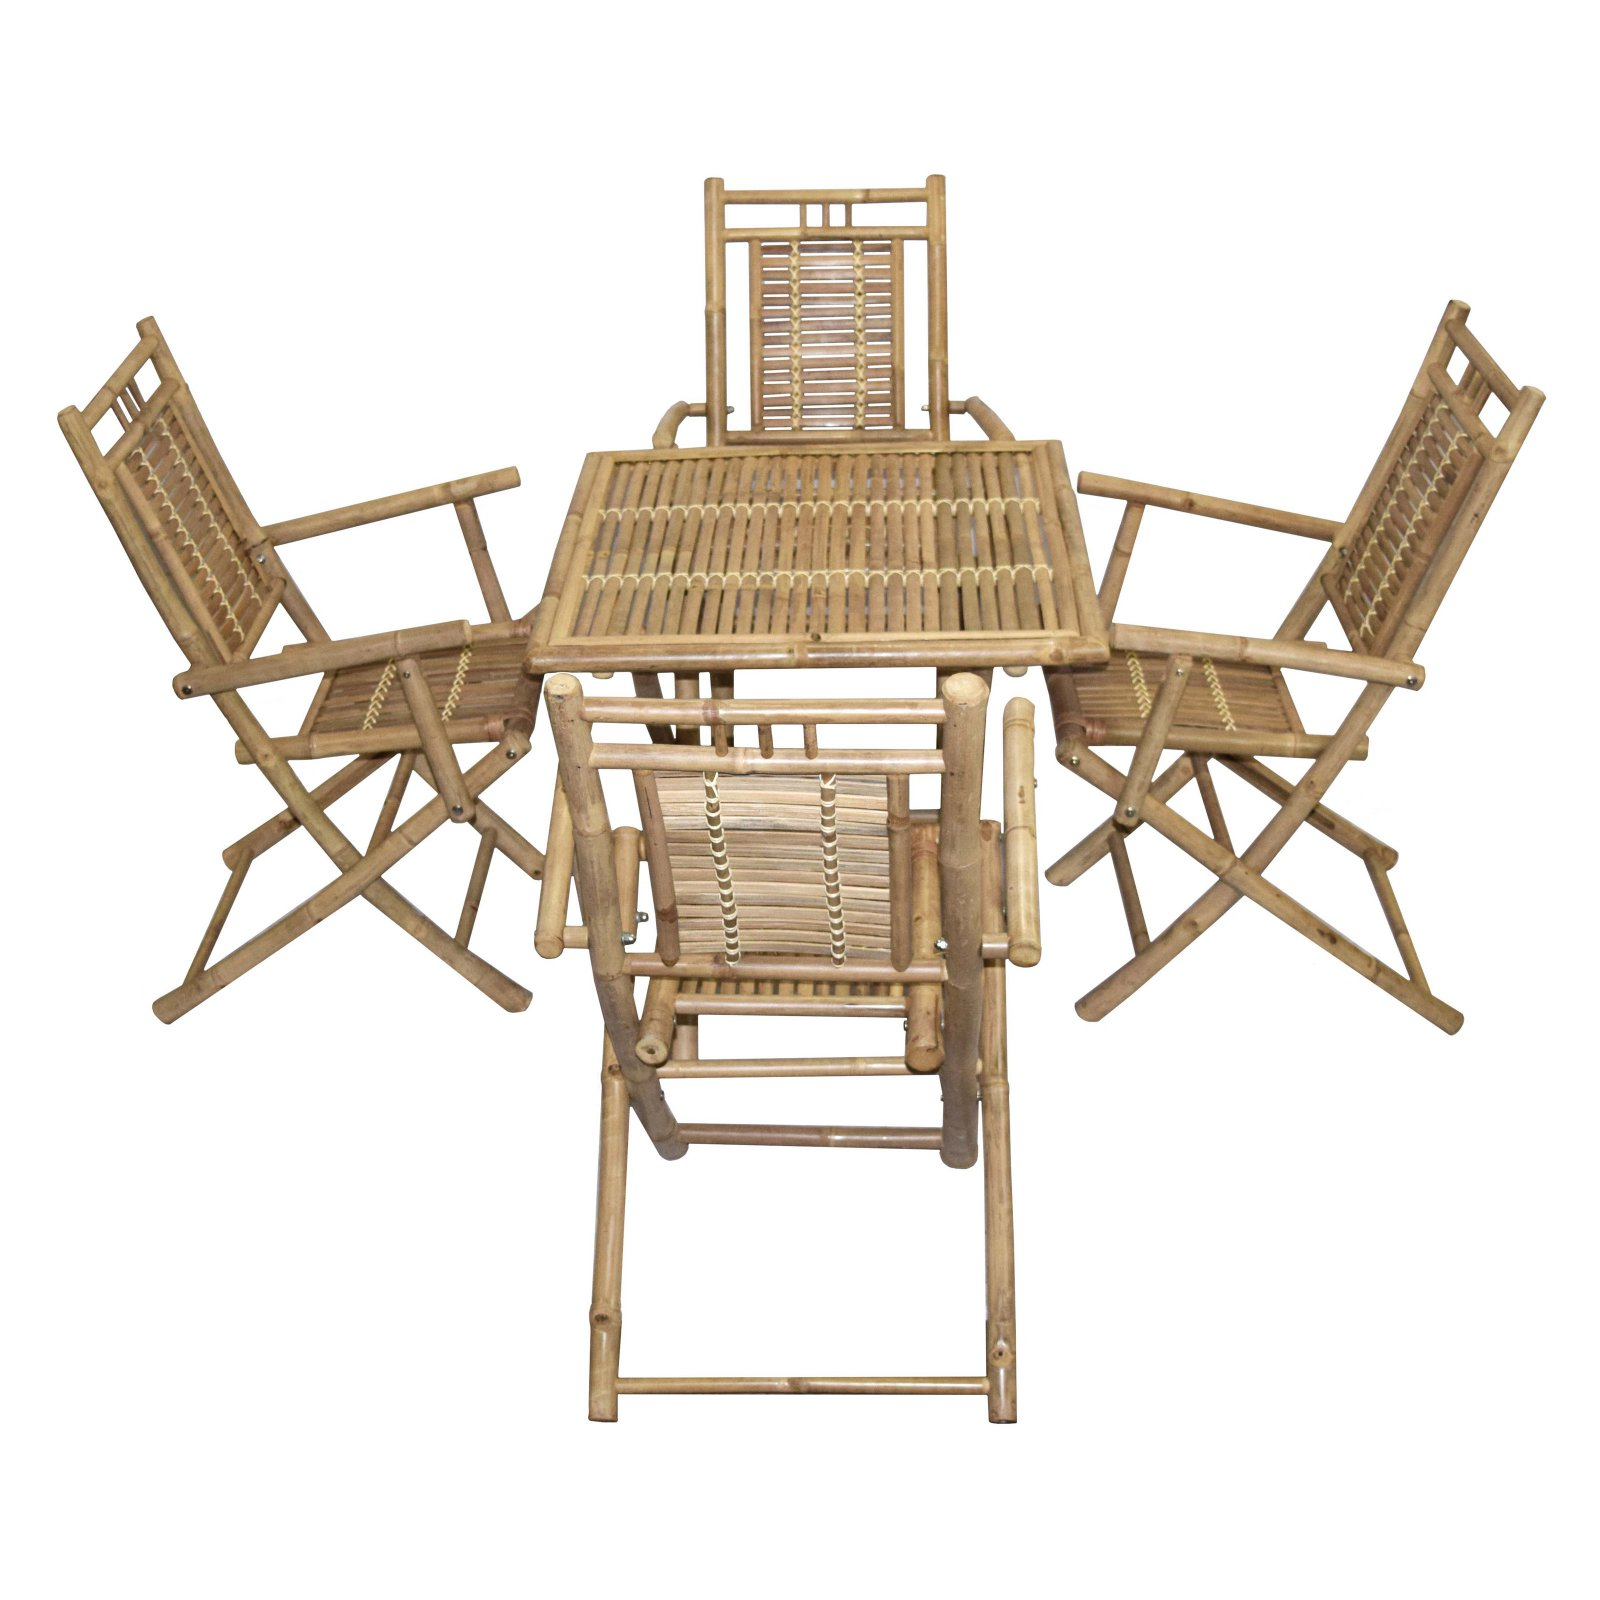 Bamboo54 Wood 5 Piece Square Patio Dining Set with Arm Chairs